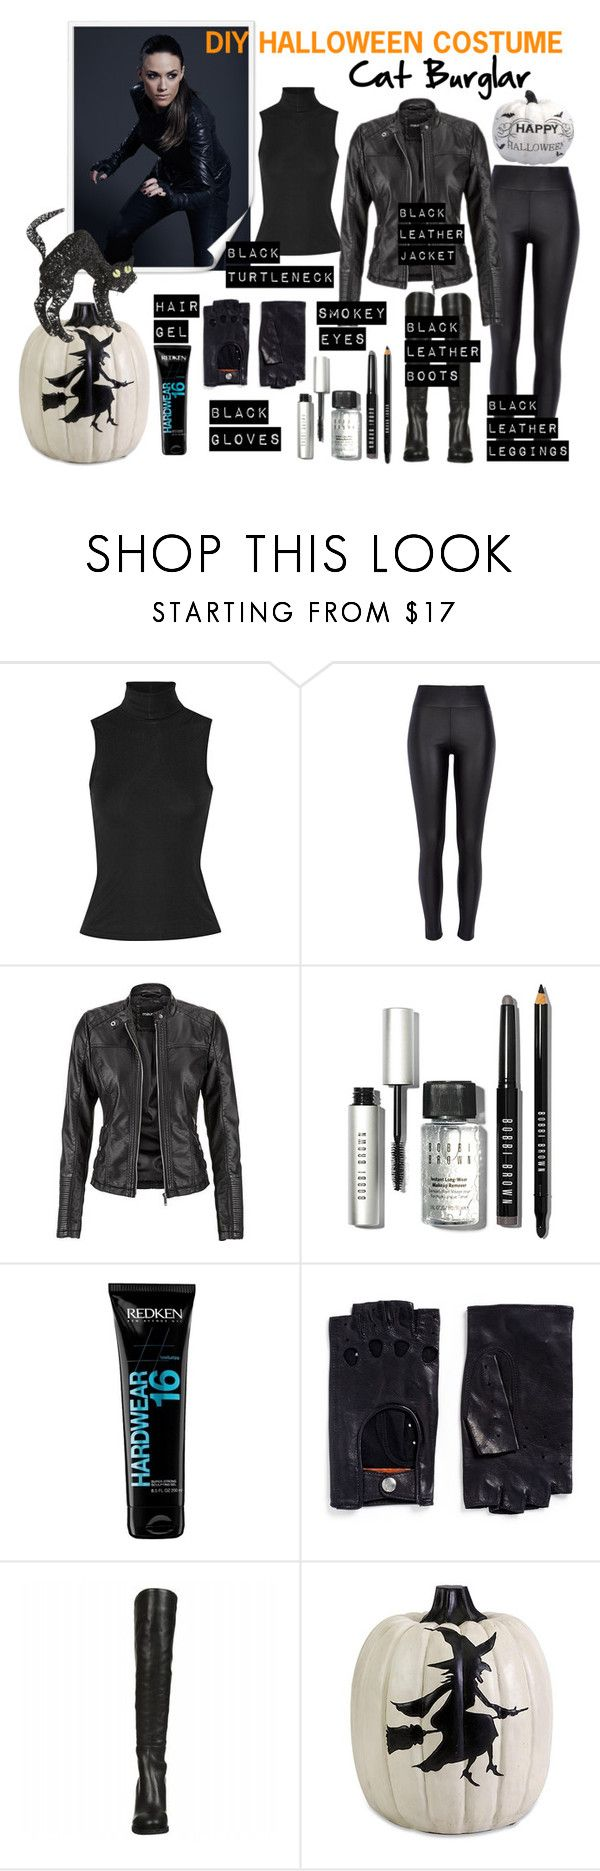 """""""Cat Burglar DIY Halloween Costume"""" by tanyabishop-icovetfashion on Polyvore featuring Theory, River Island, Redken, Georges Morand, Pier 1 Imports and diycostume"""